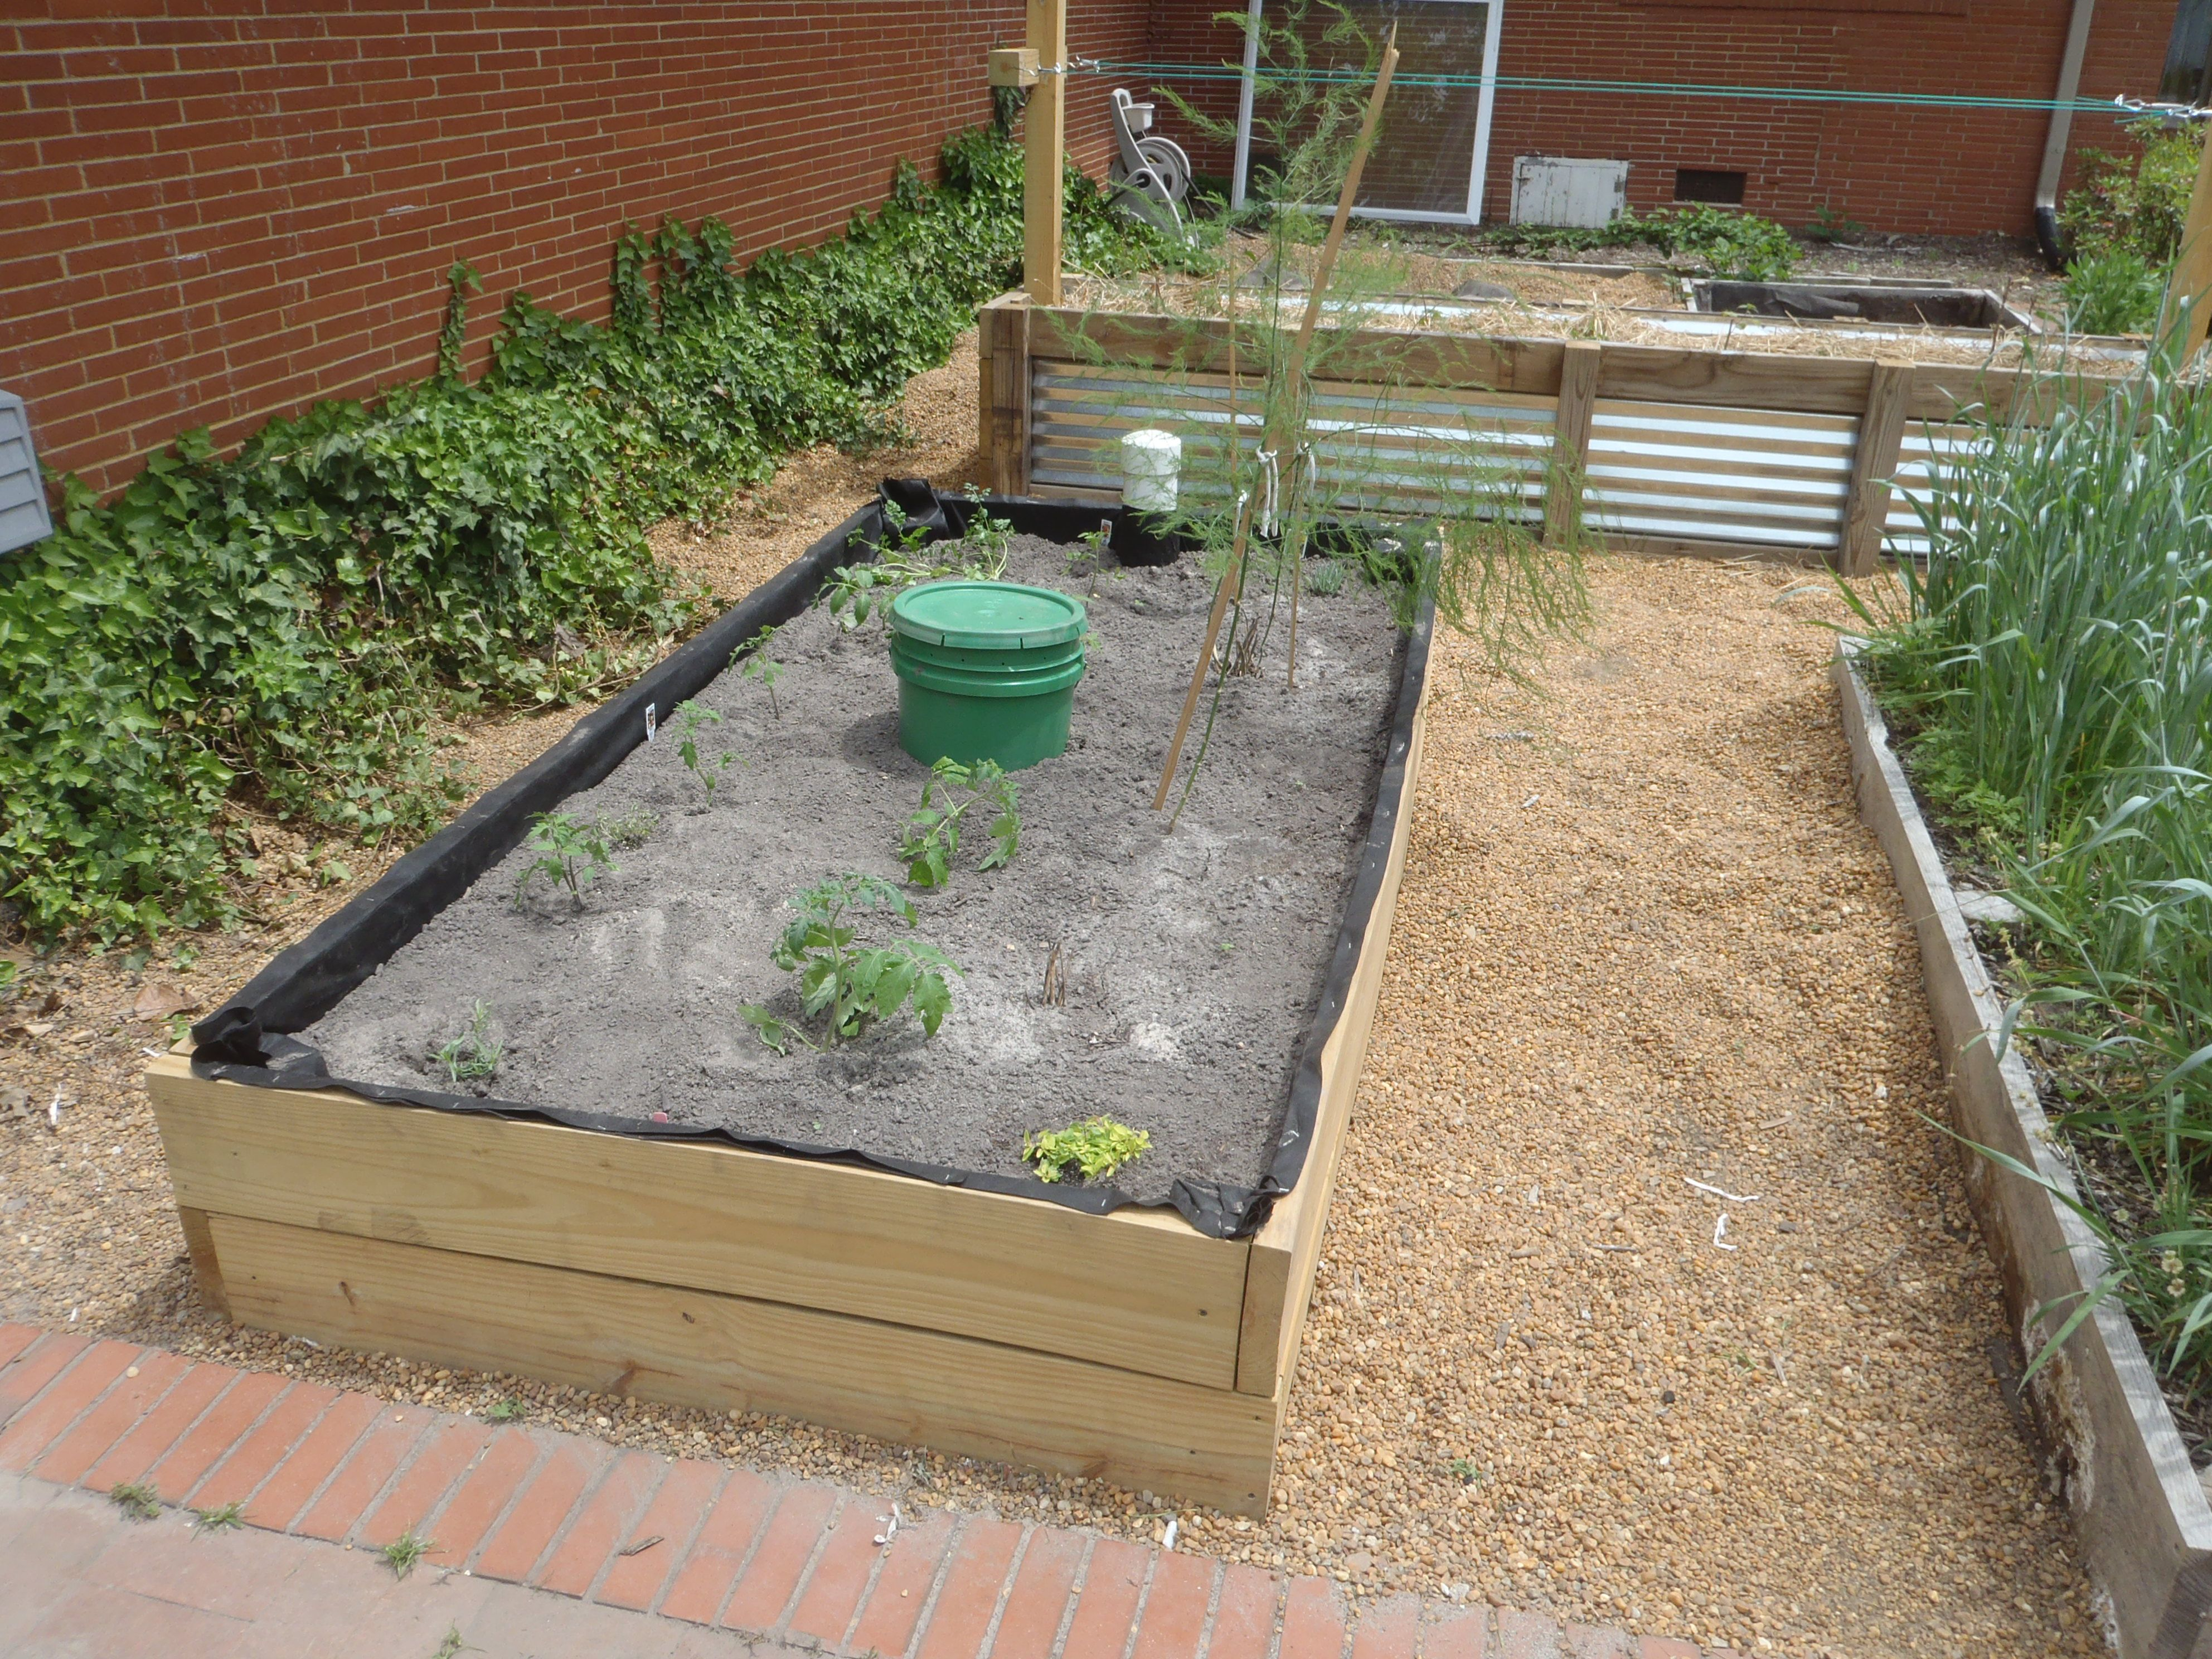 This is our 4'x8' wicking bed (our version of a large